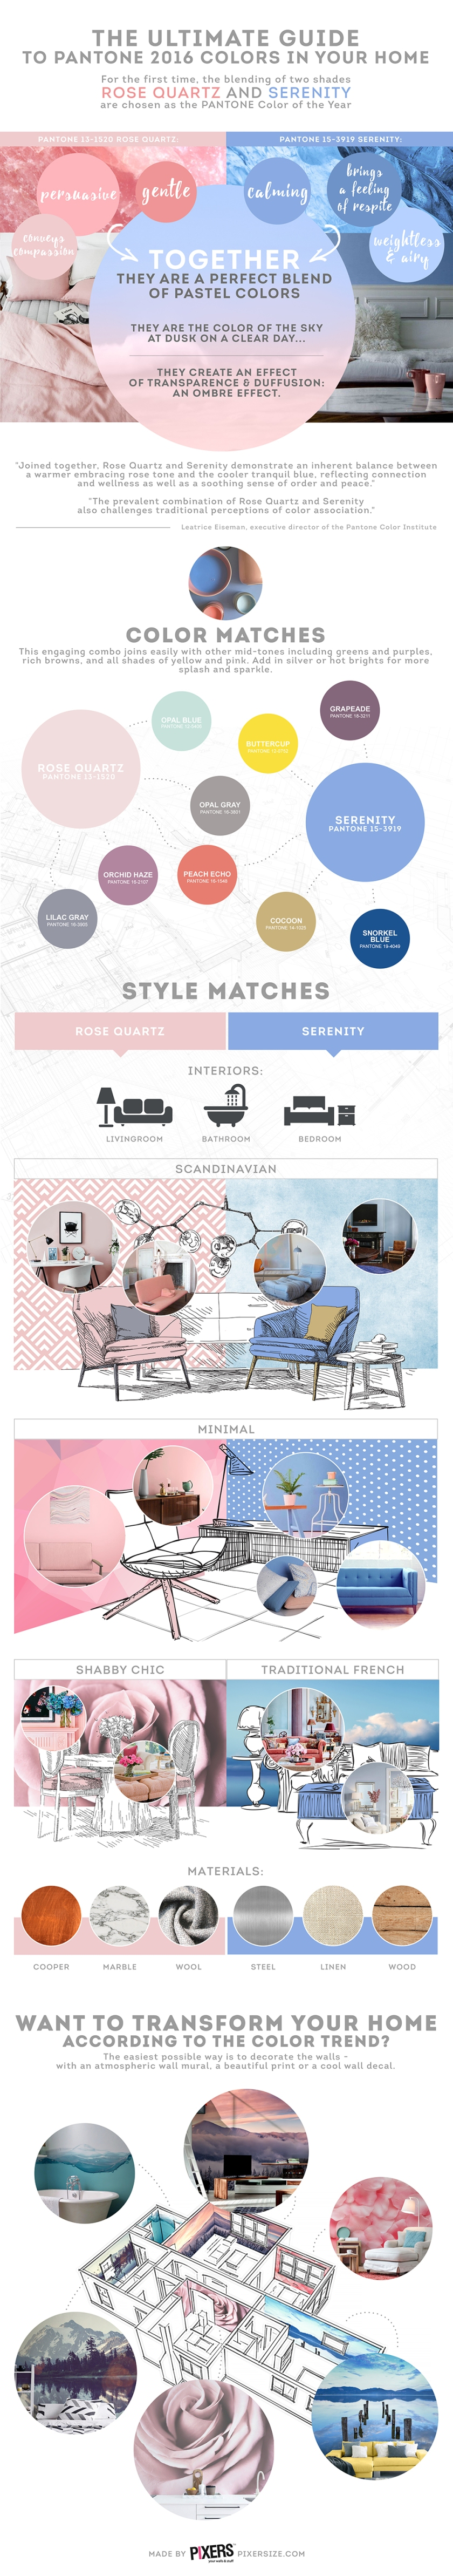 the-ultimate-guide-to-pantone-2016-colors-in-your-home_56a106a2ca636.jpg